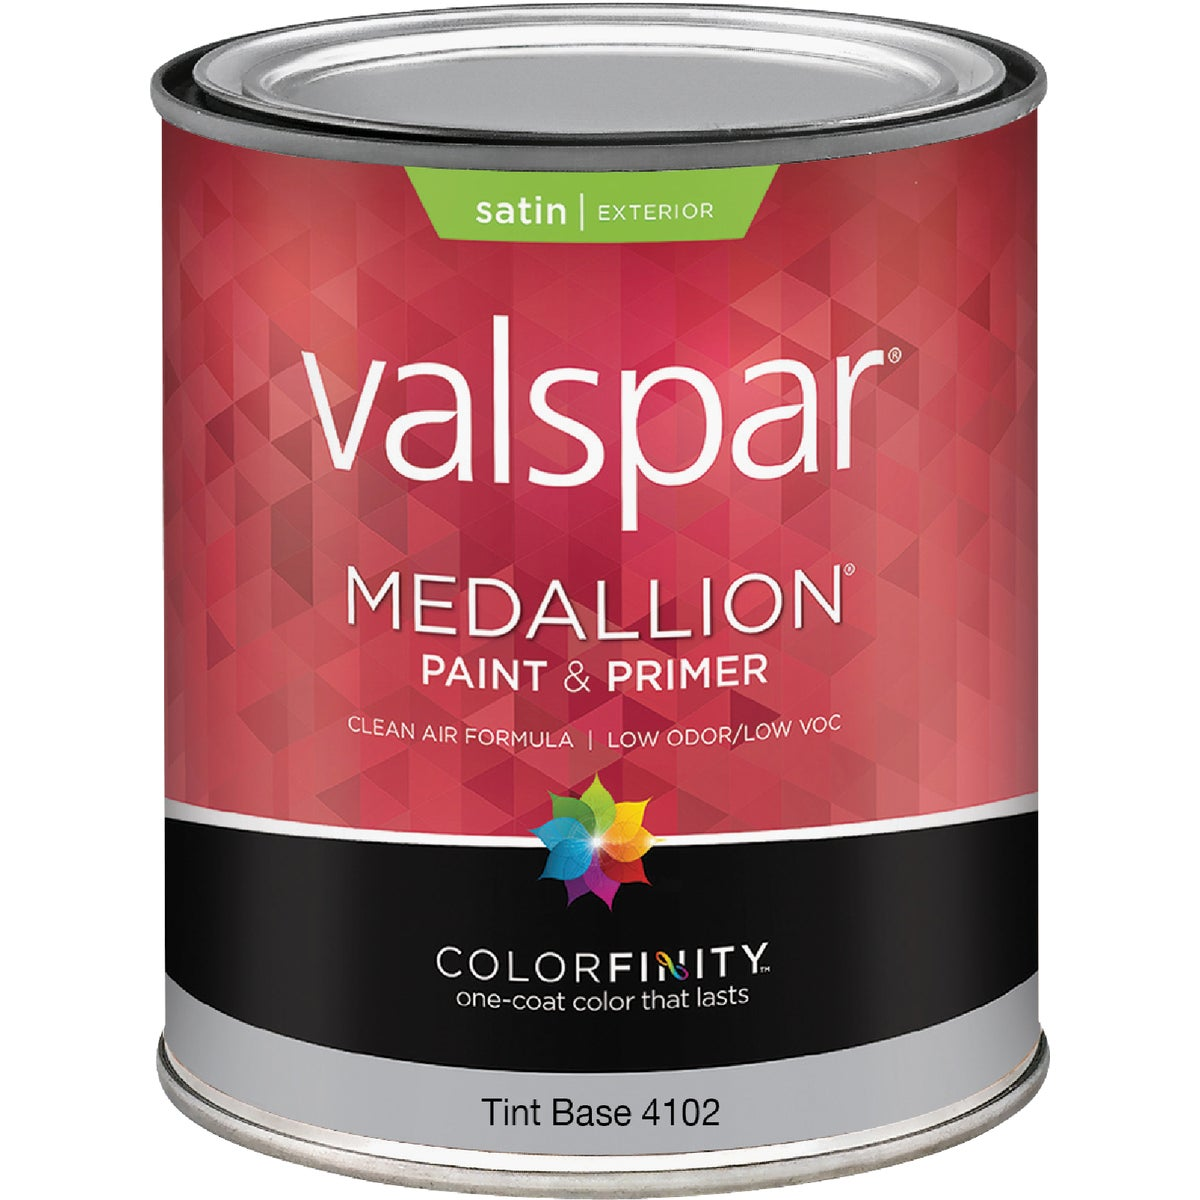 EXT SAT TINT BS PAINT - 027.0004102.005 by Valspar Corp